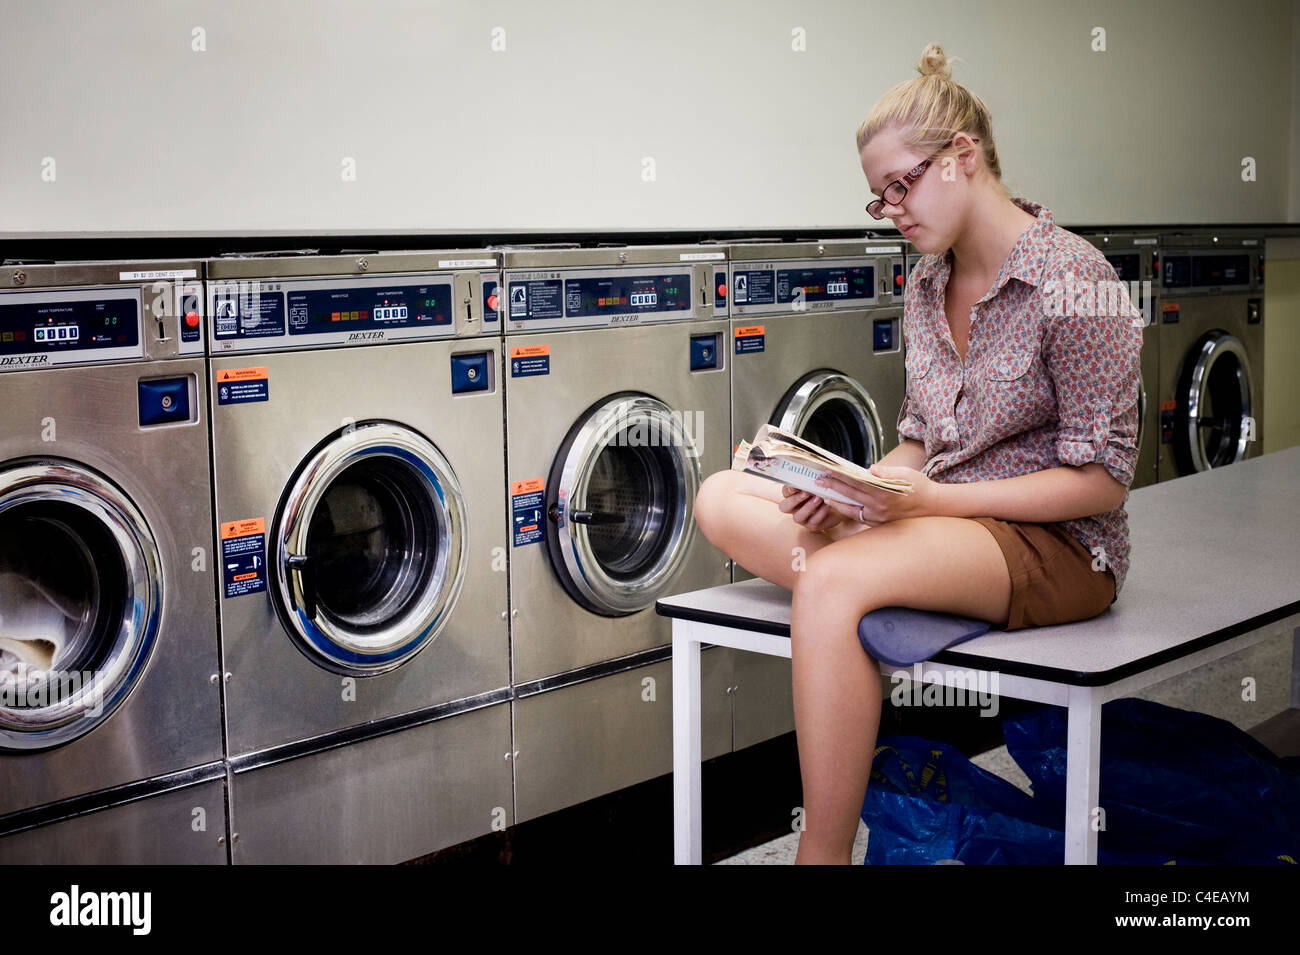 Girl reading book at laundromat - Stock Image